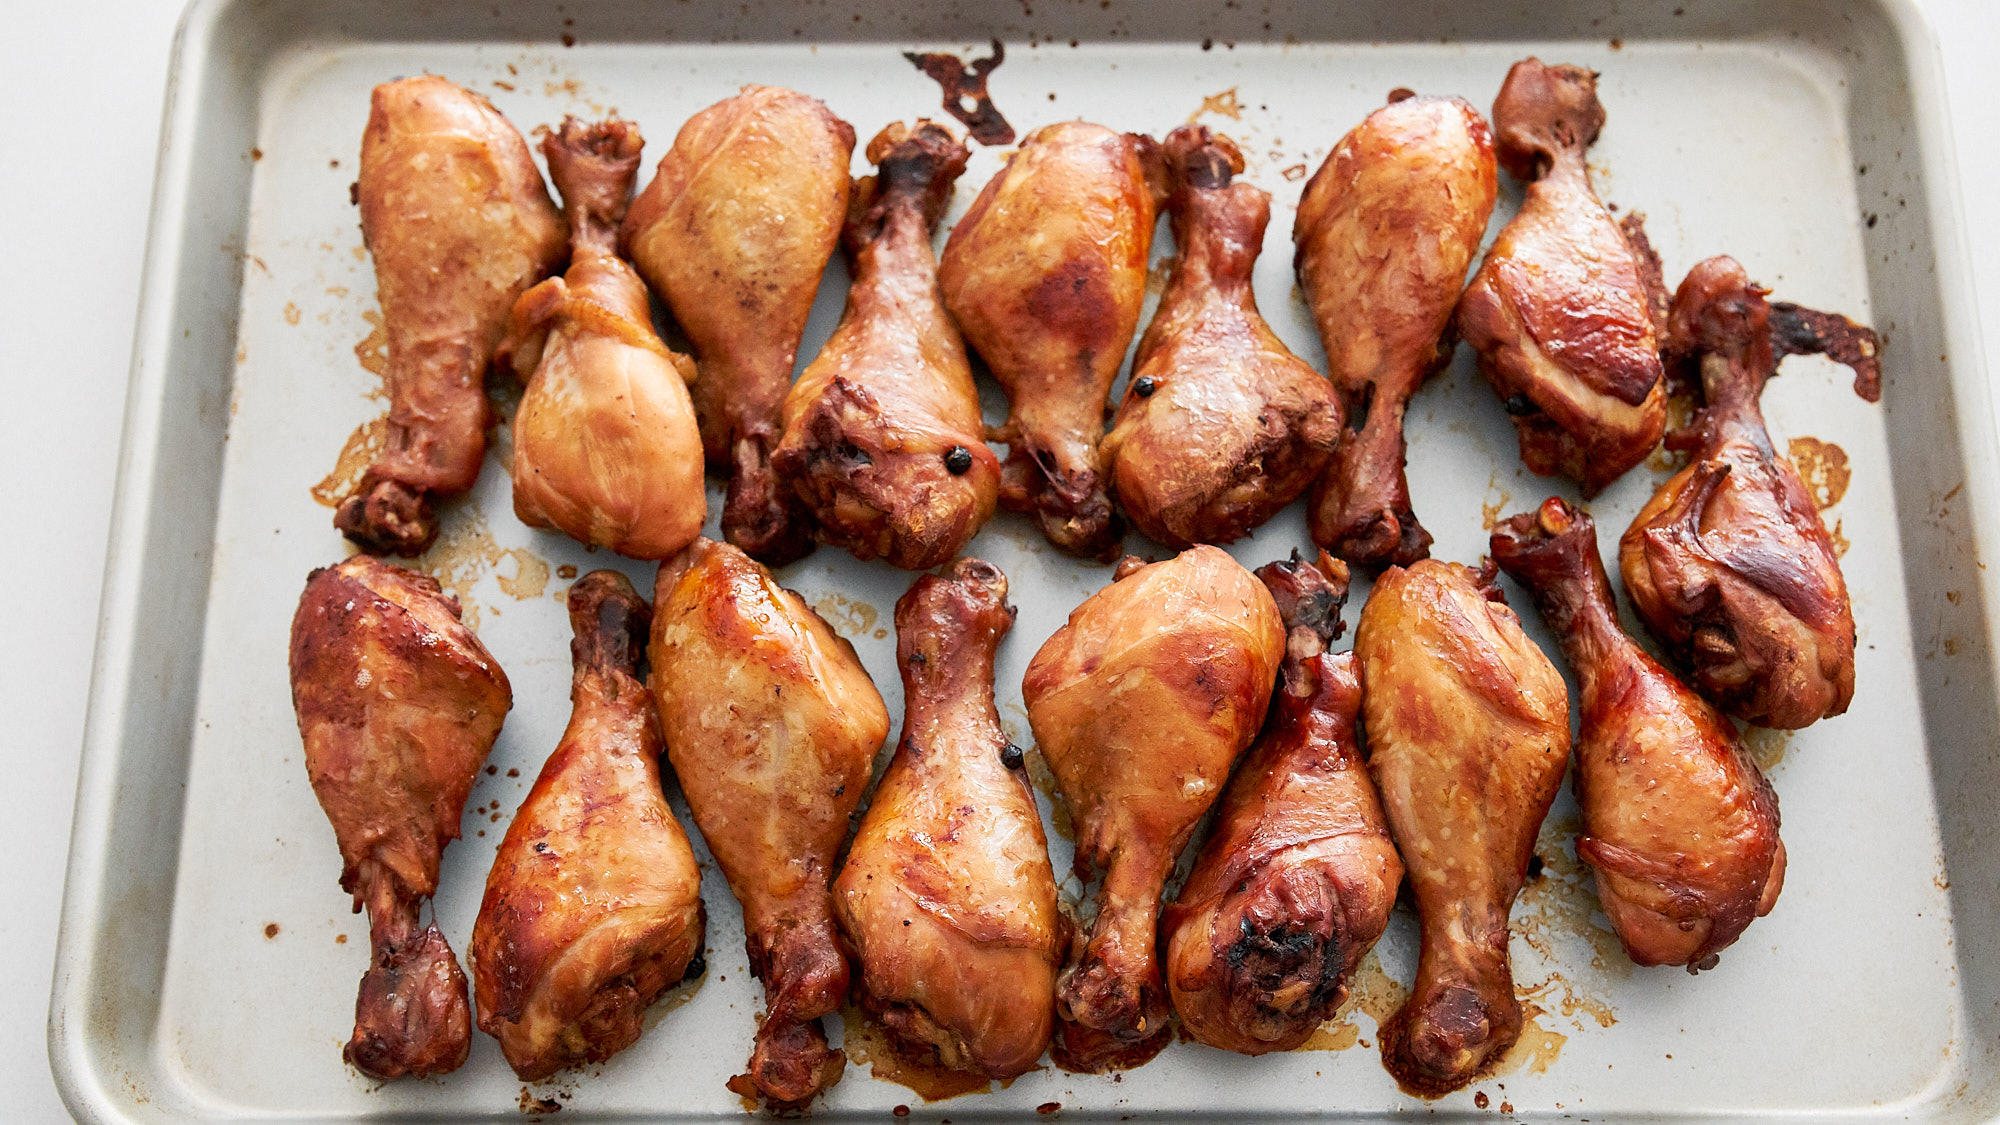 Roast the chicken in the oven until the skin caramelizes.